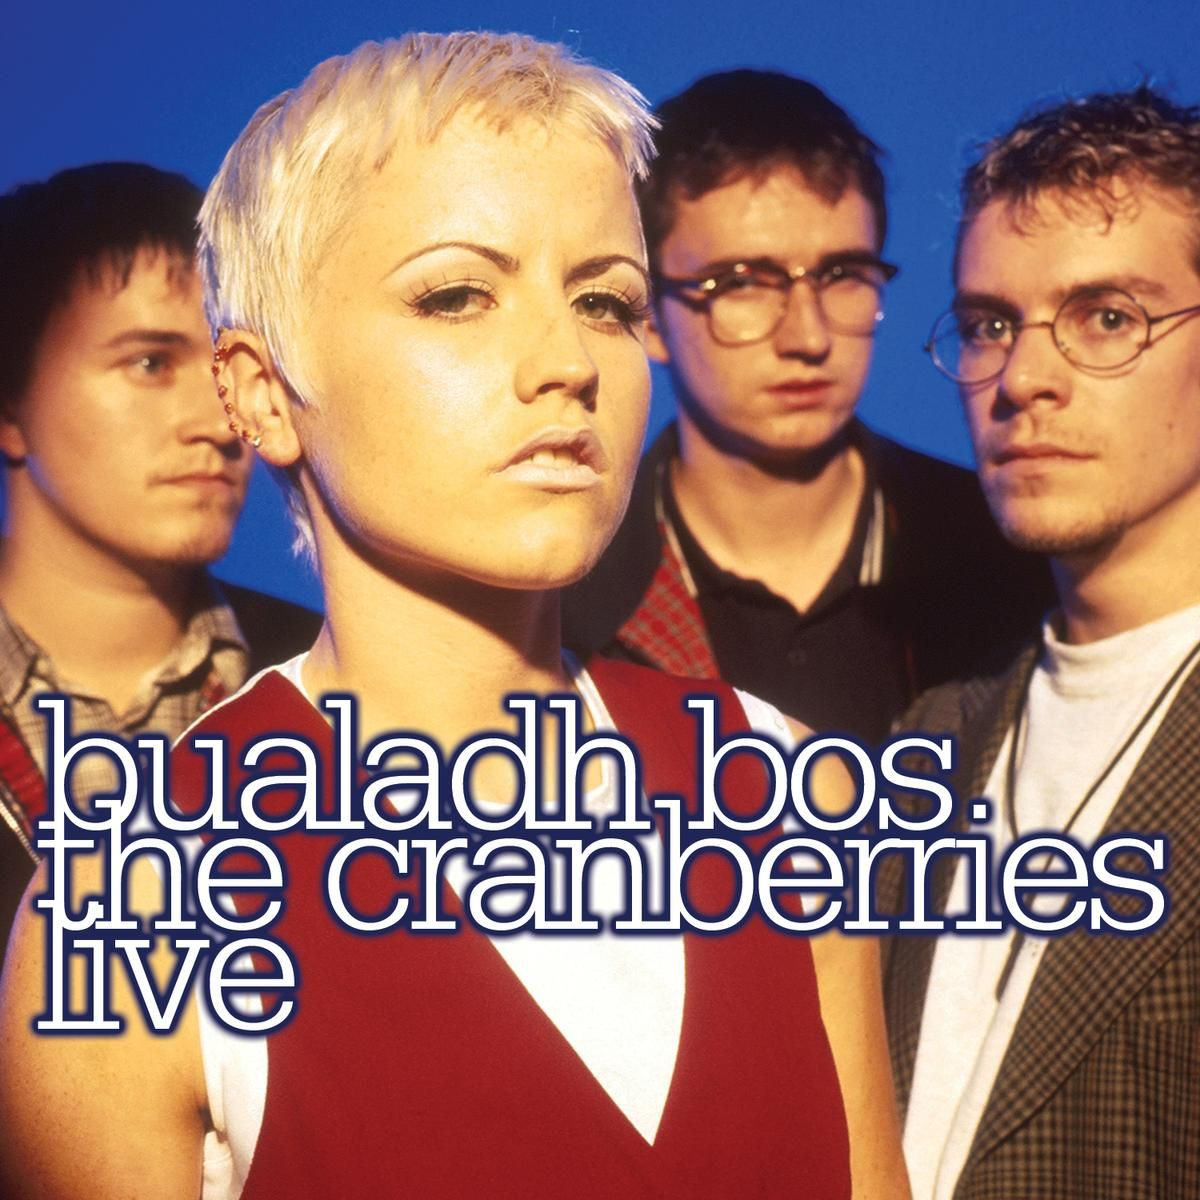 The Cranberries - Bualadh Bos. The Cranberries Live album cover